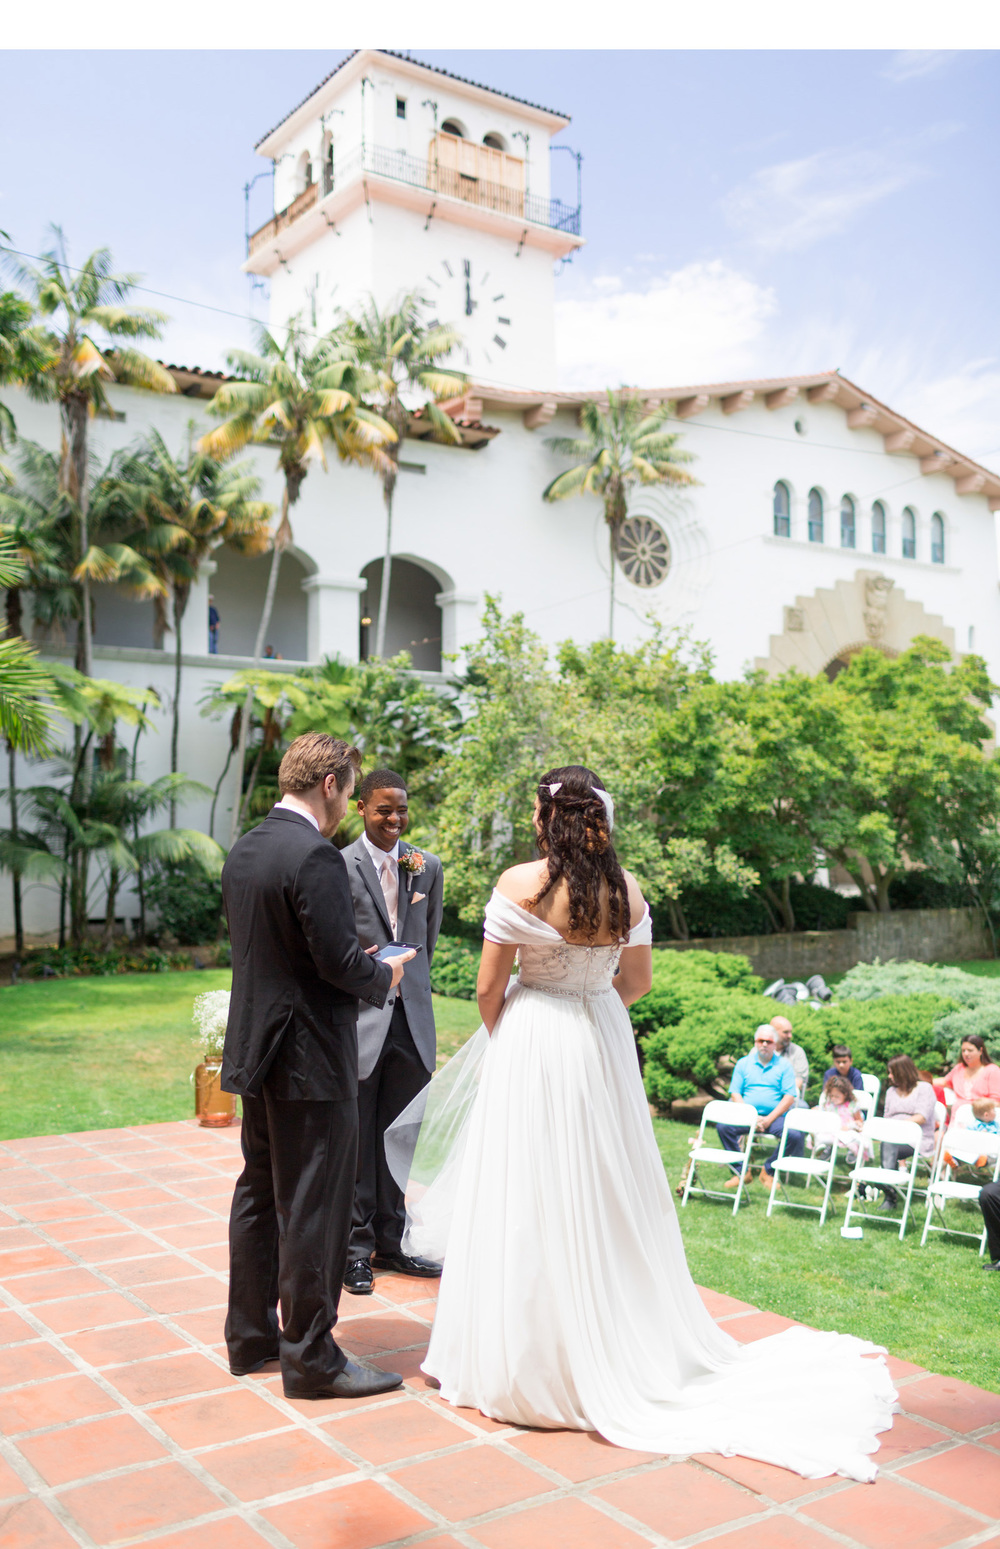 Santa-Barbara-Courthouse-Wedding_02.jpg